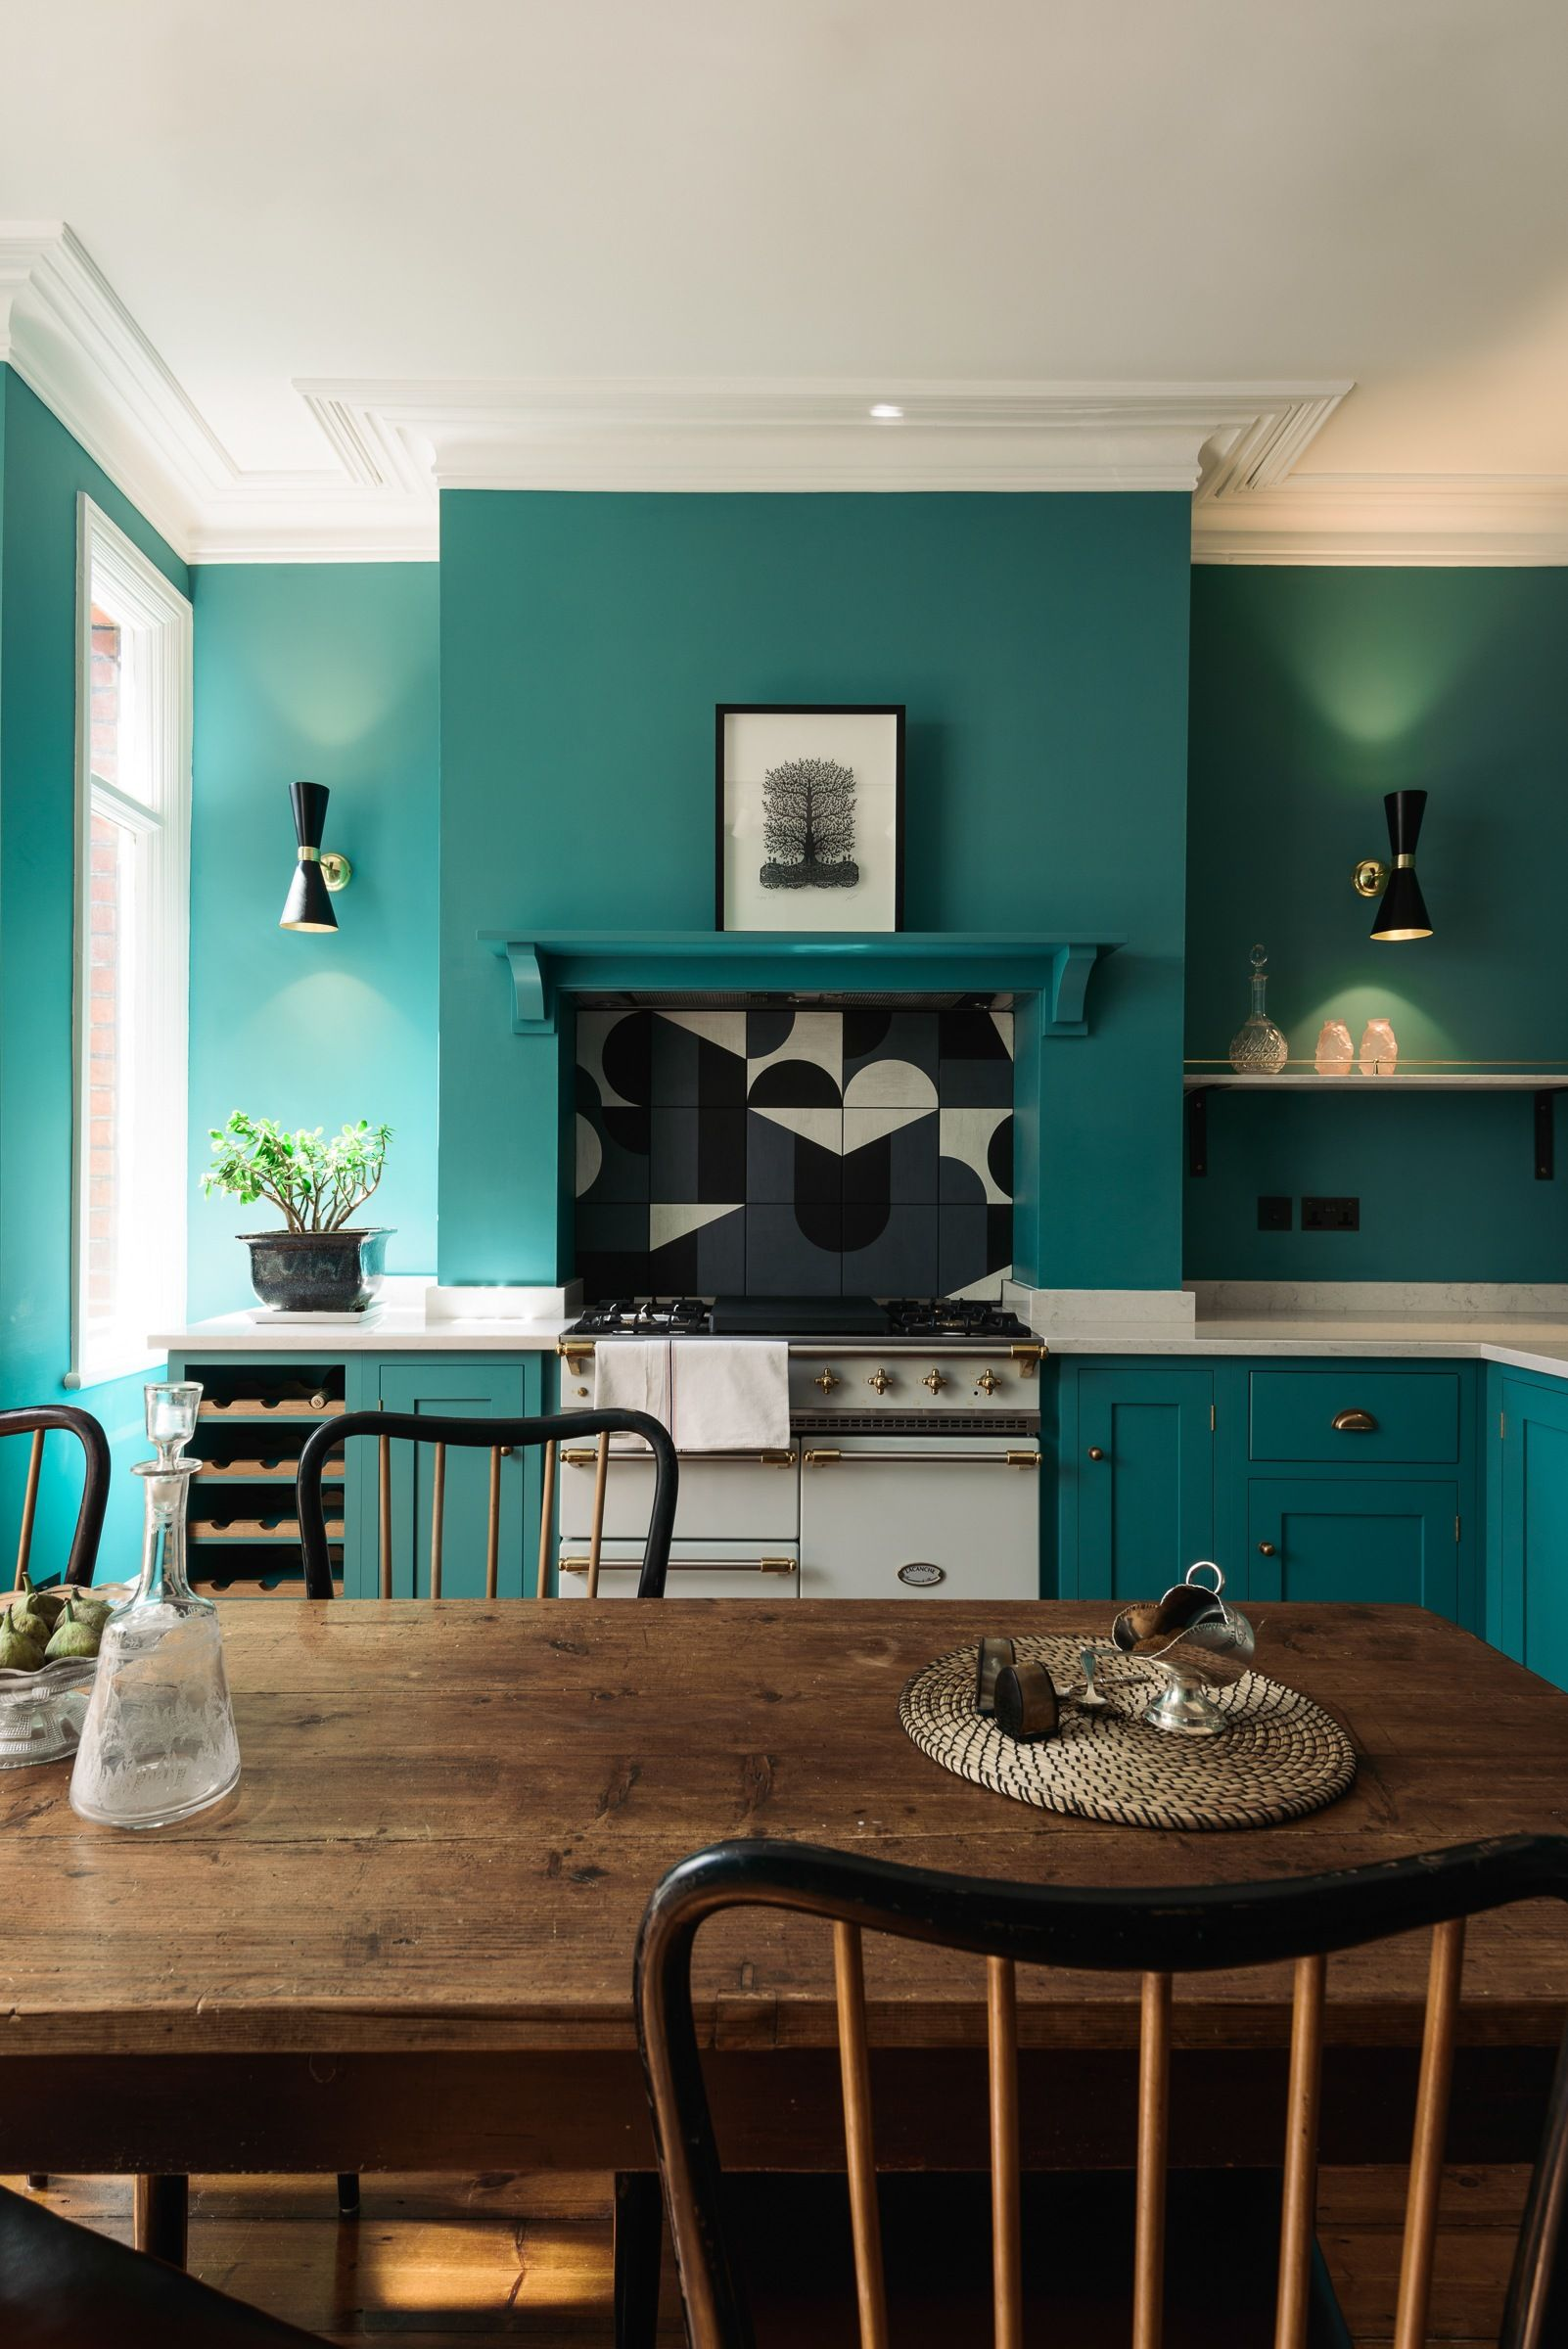 These are Our Favorite Kitchens of 2017 | Edwardian house, Shaker ...